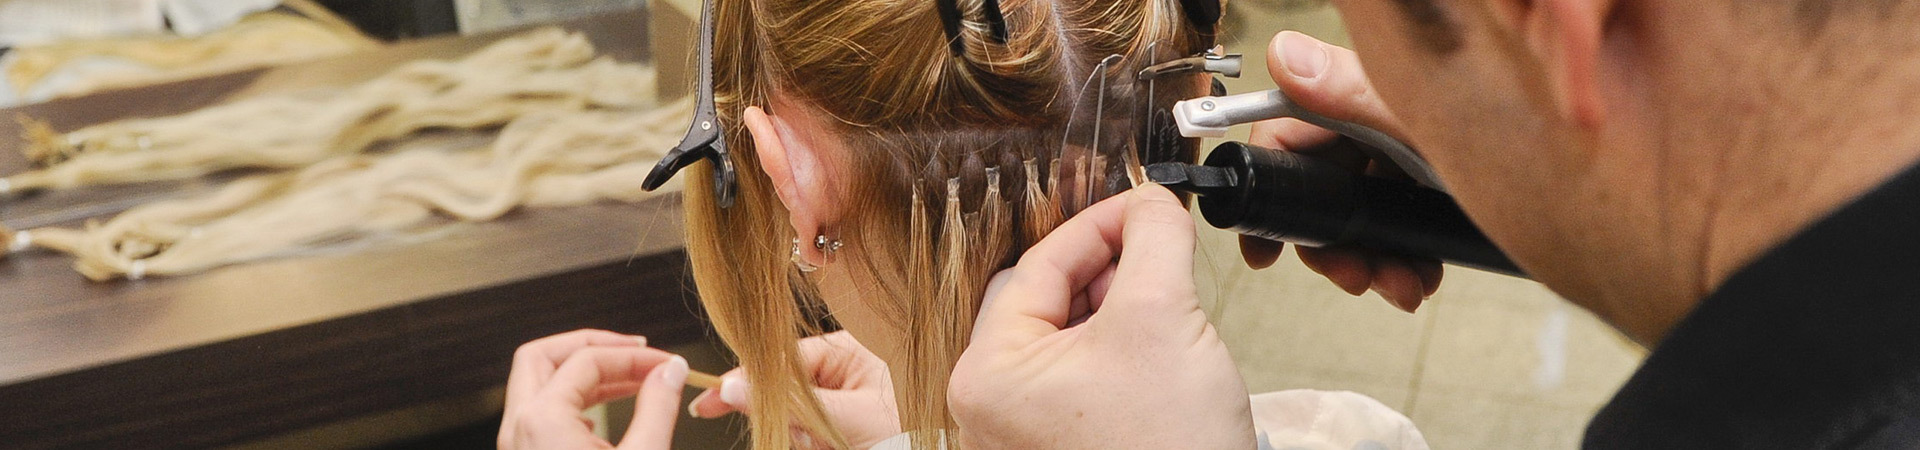 Great Lengths Partner geben Einblick in ihre Arbeit (© Great Lengths)